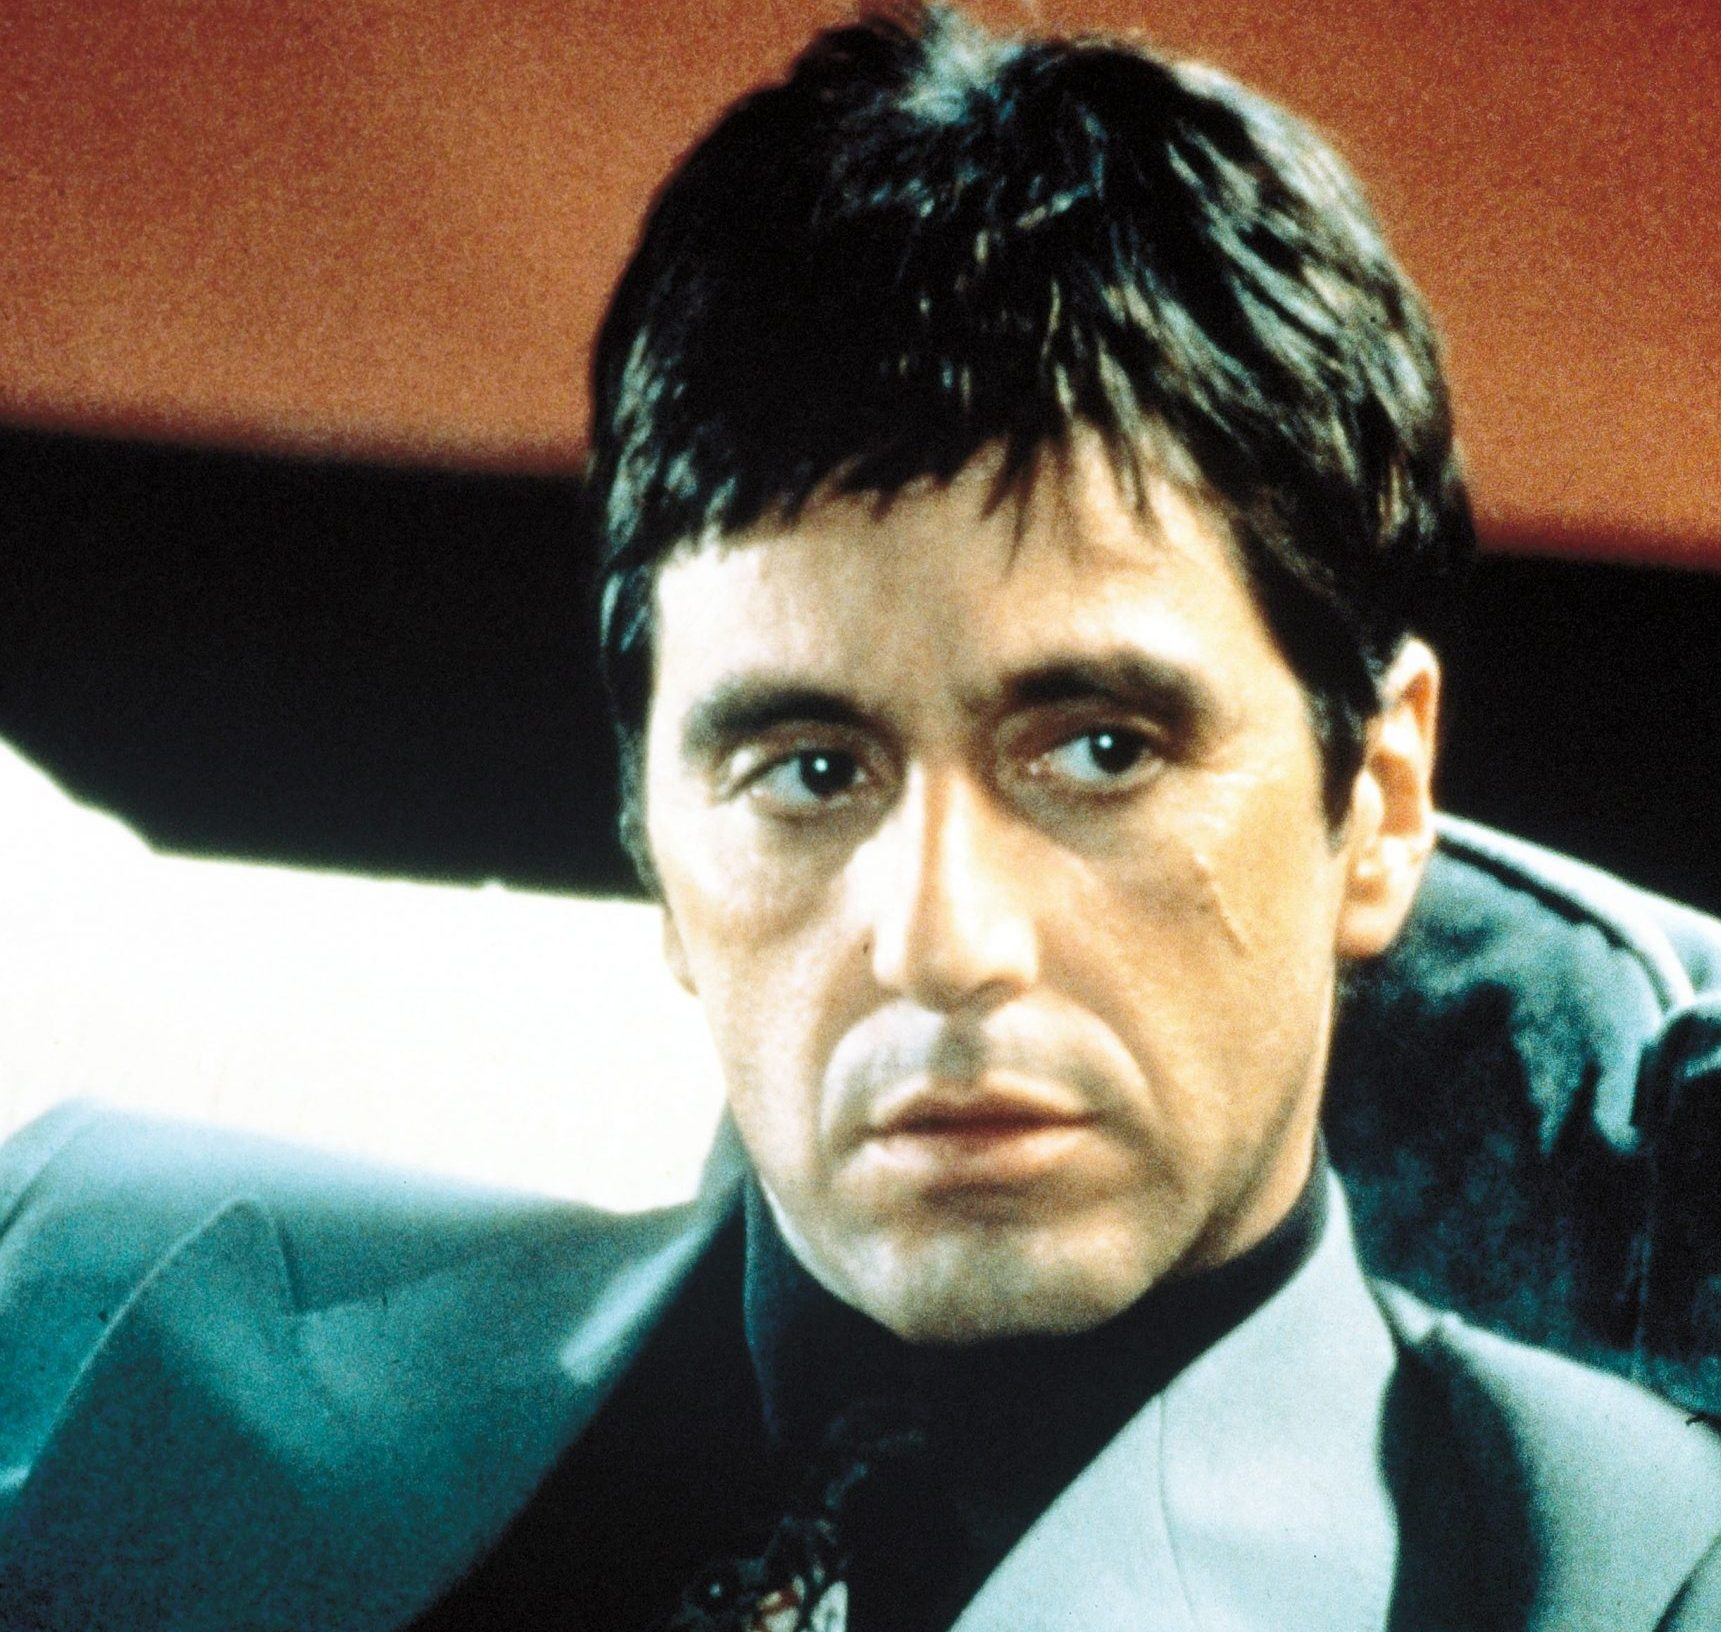 fhngmmgfpqy scaled e1620376357951 Say Hello To These Little Facts You Probably Didn't Know About Scarface